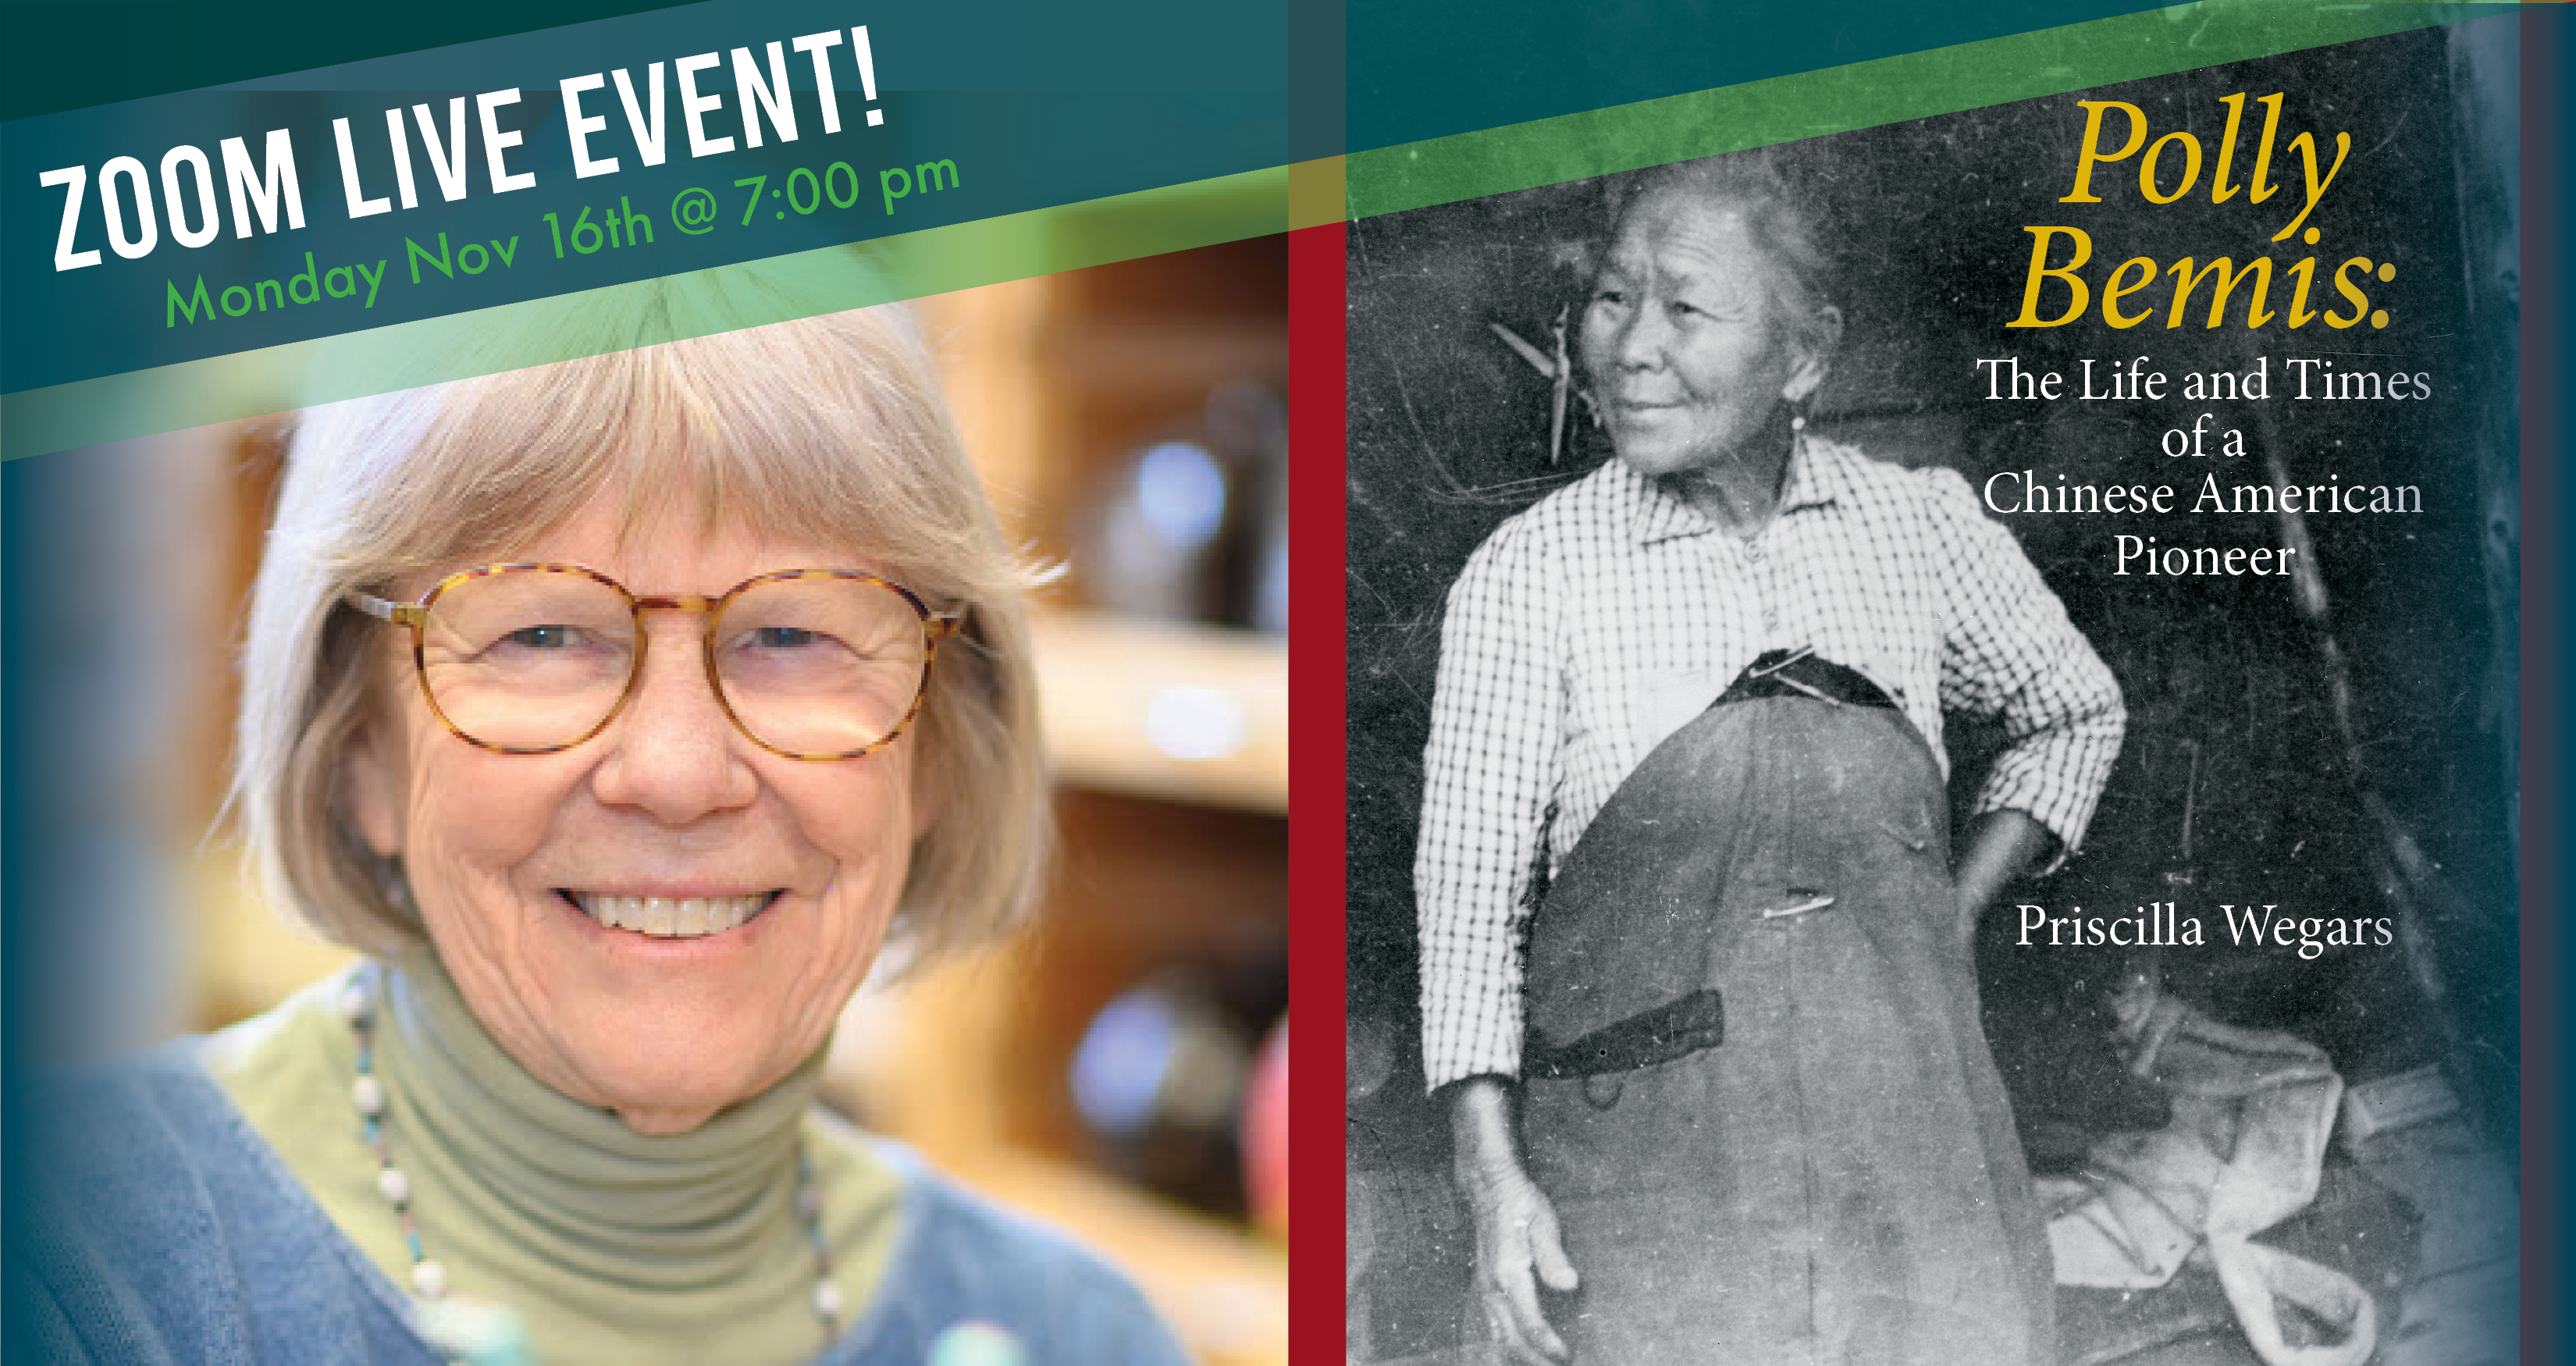 Priscilla Wegars - Polly Bemis: The Life and Times of a Chinese American Pioneer